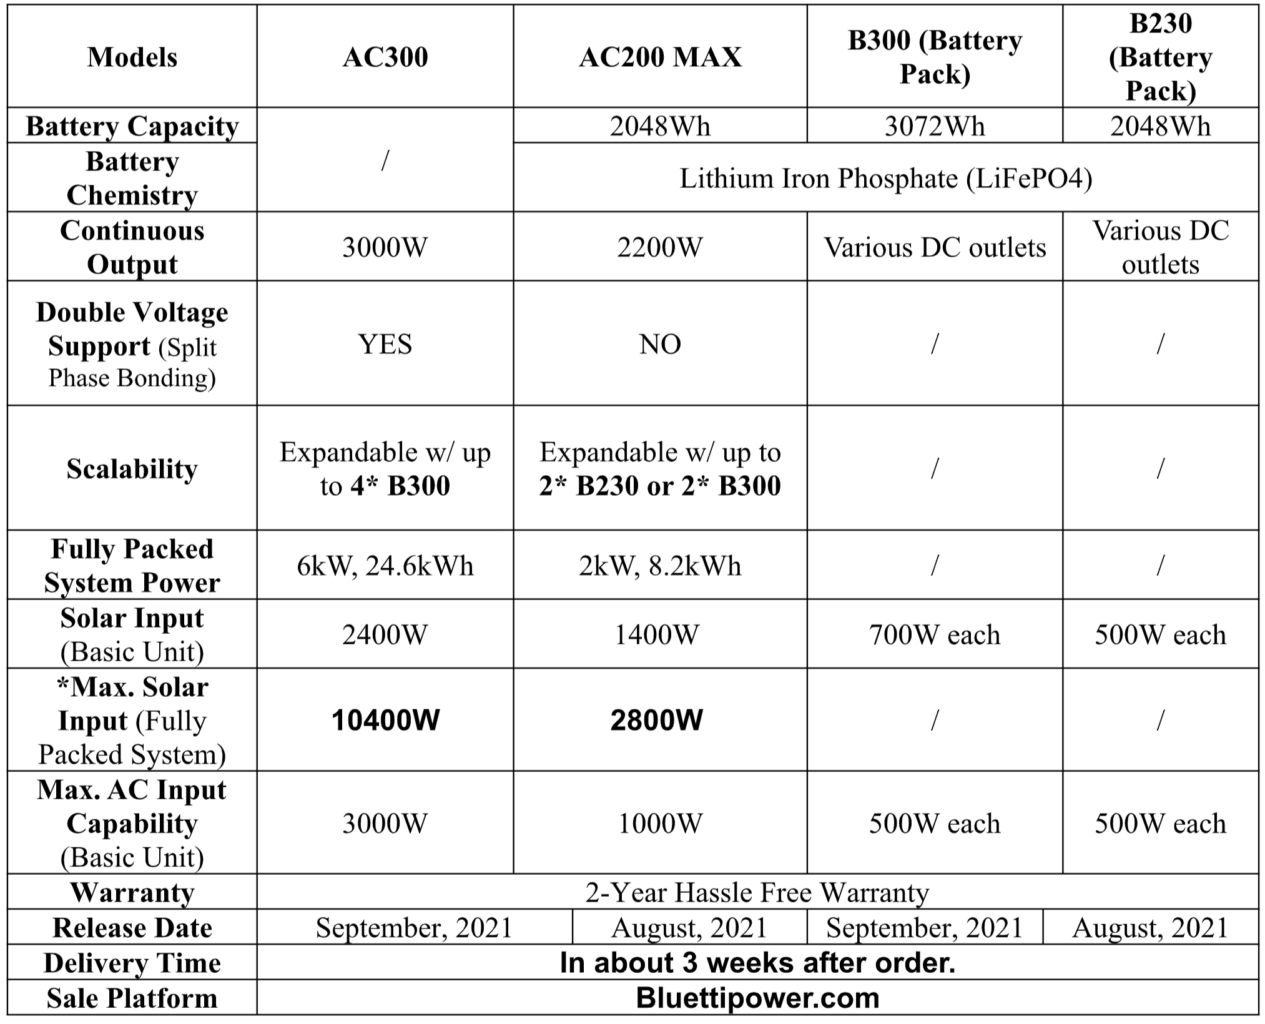 BLUETTI AC300 and AC200 Max specifications